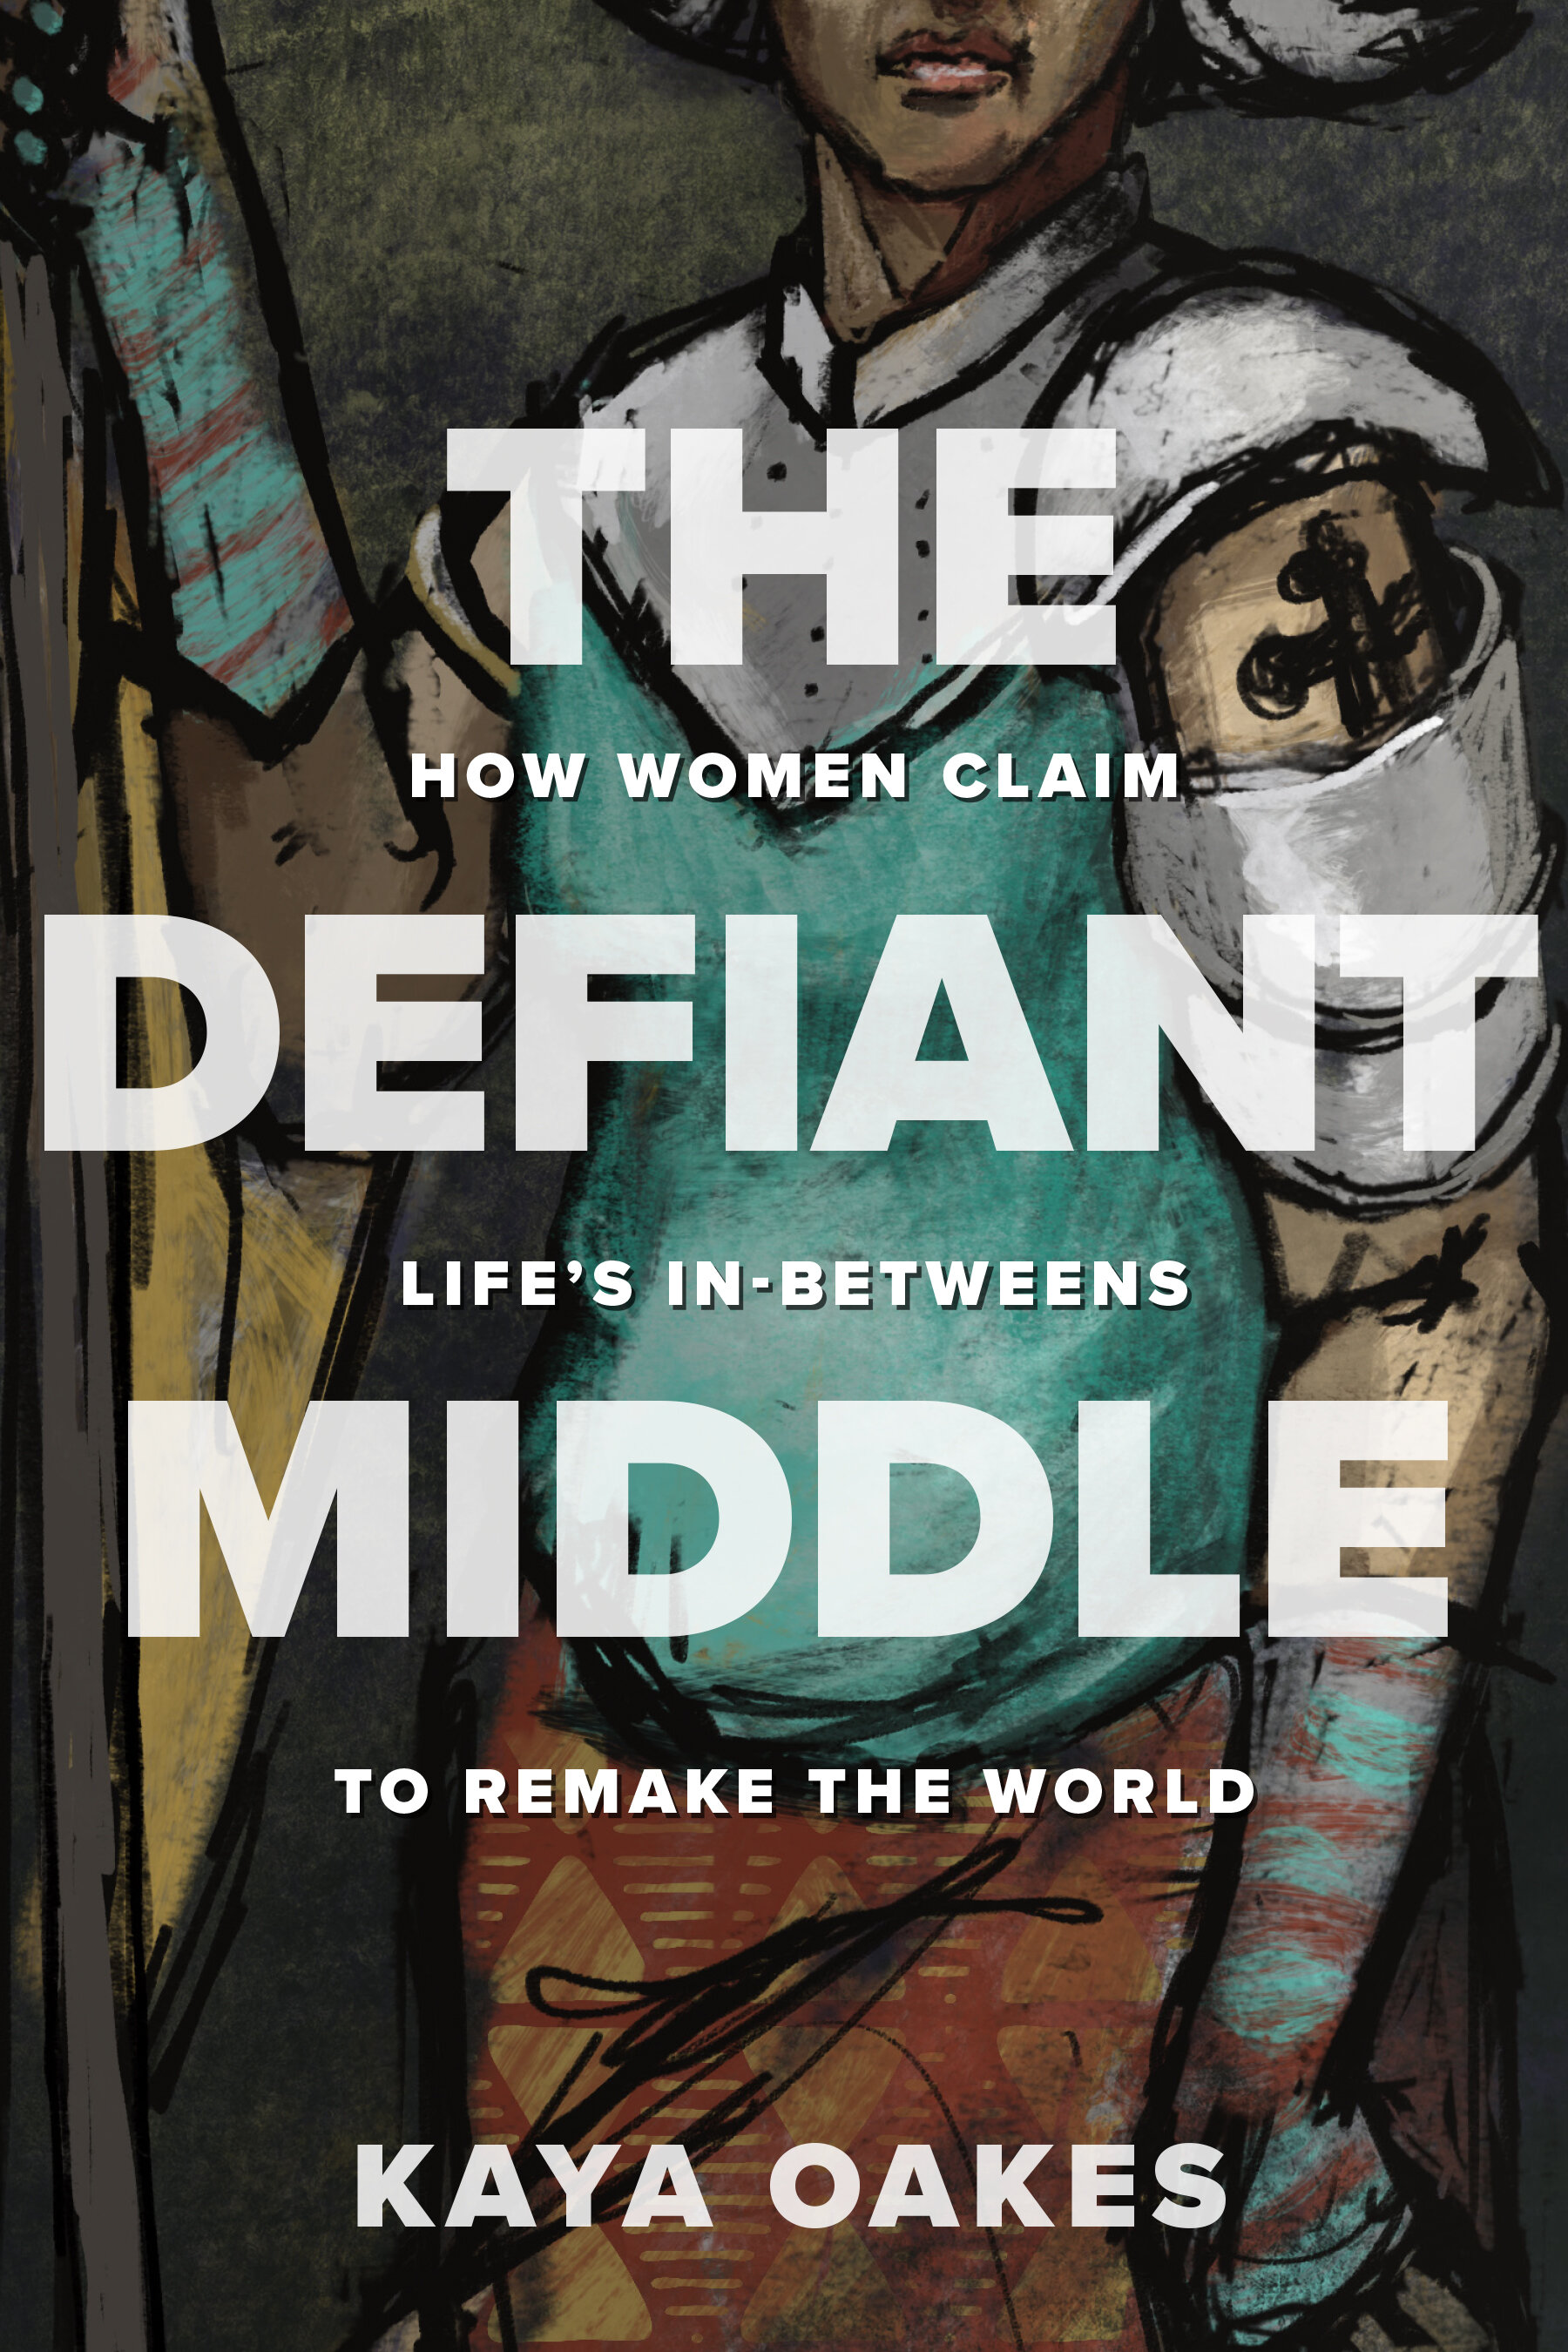 The Defiant Middle: How Women Claim Life's In-Betweens to Remake the World